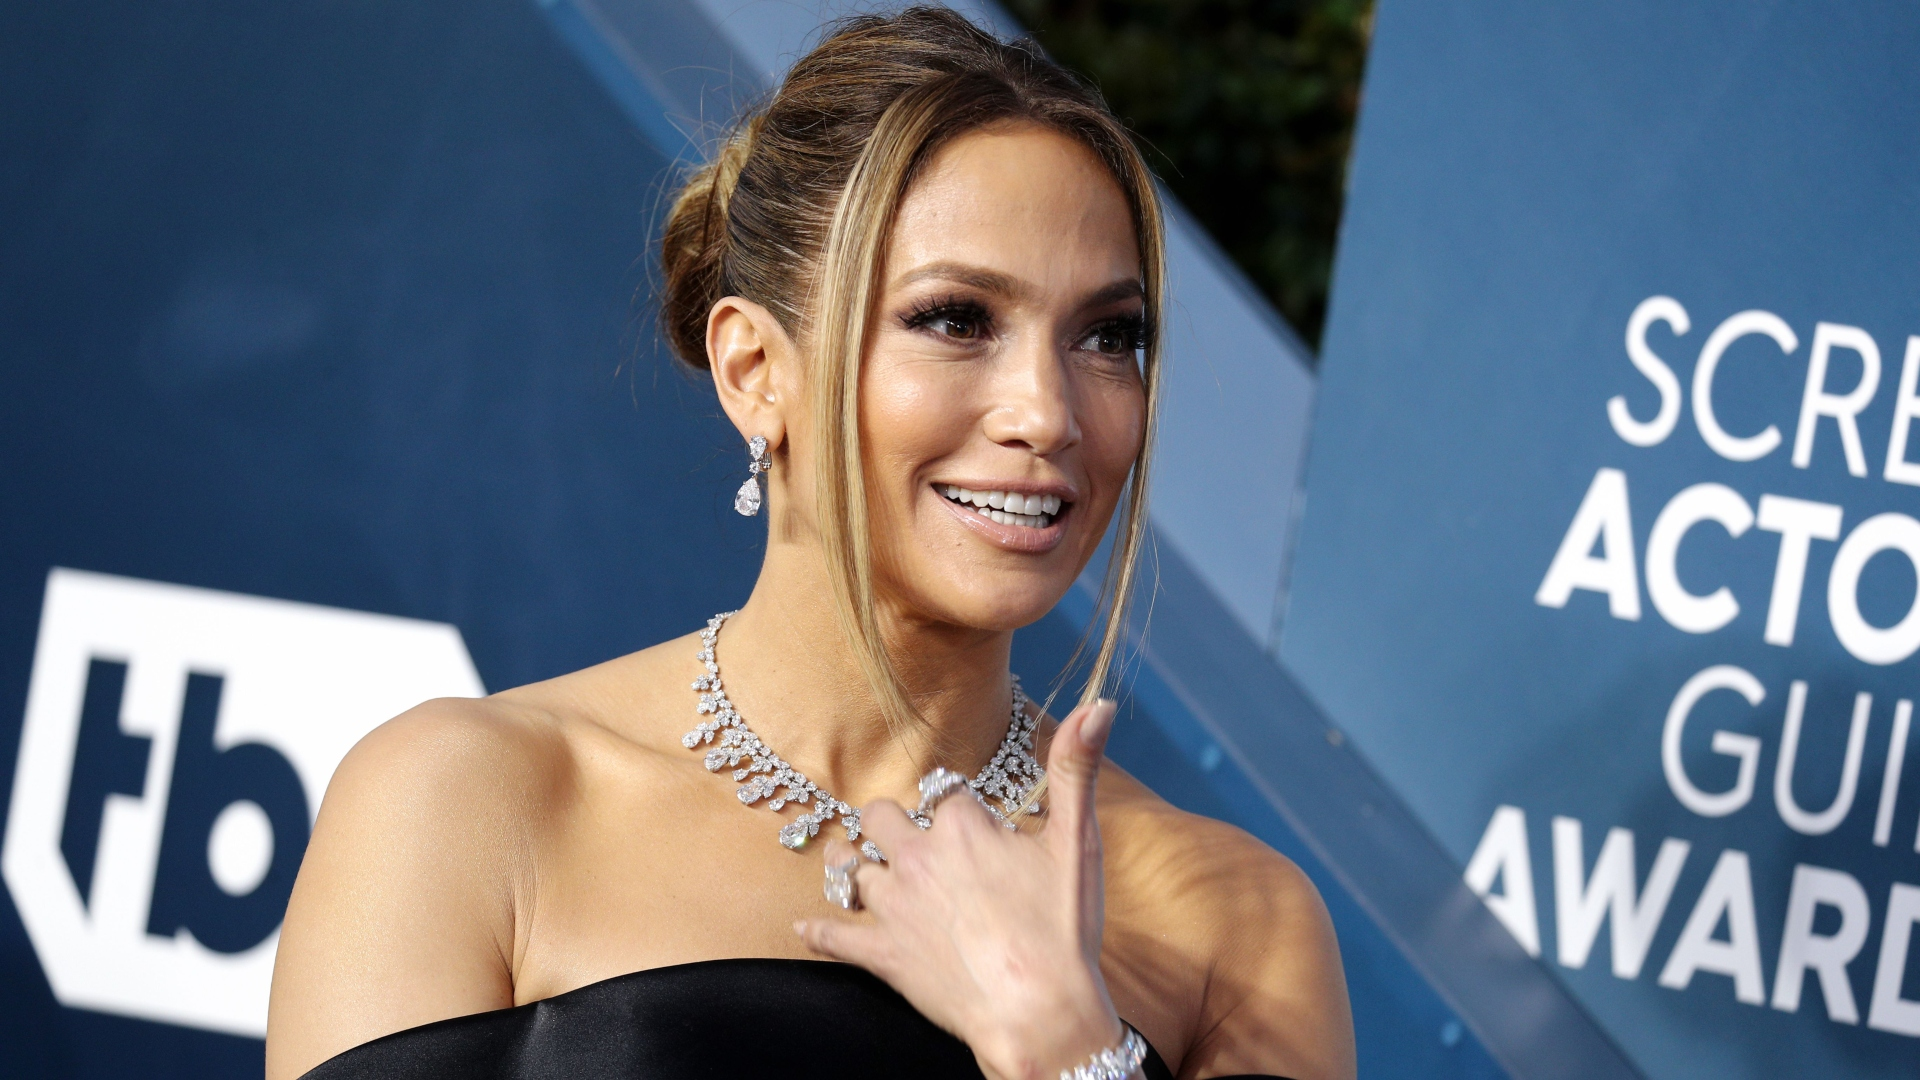 J.Lo Shares Super Bowl Halftime Show Throwback & Urges Americans To Vote